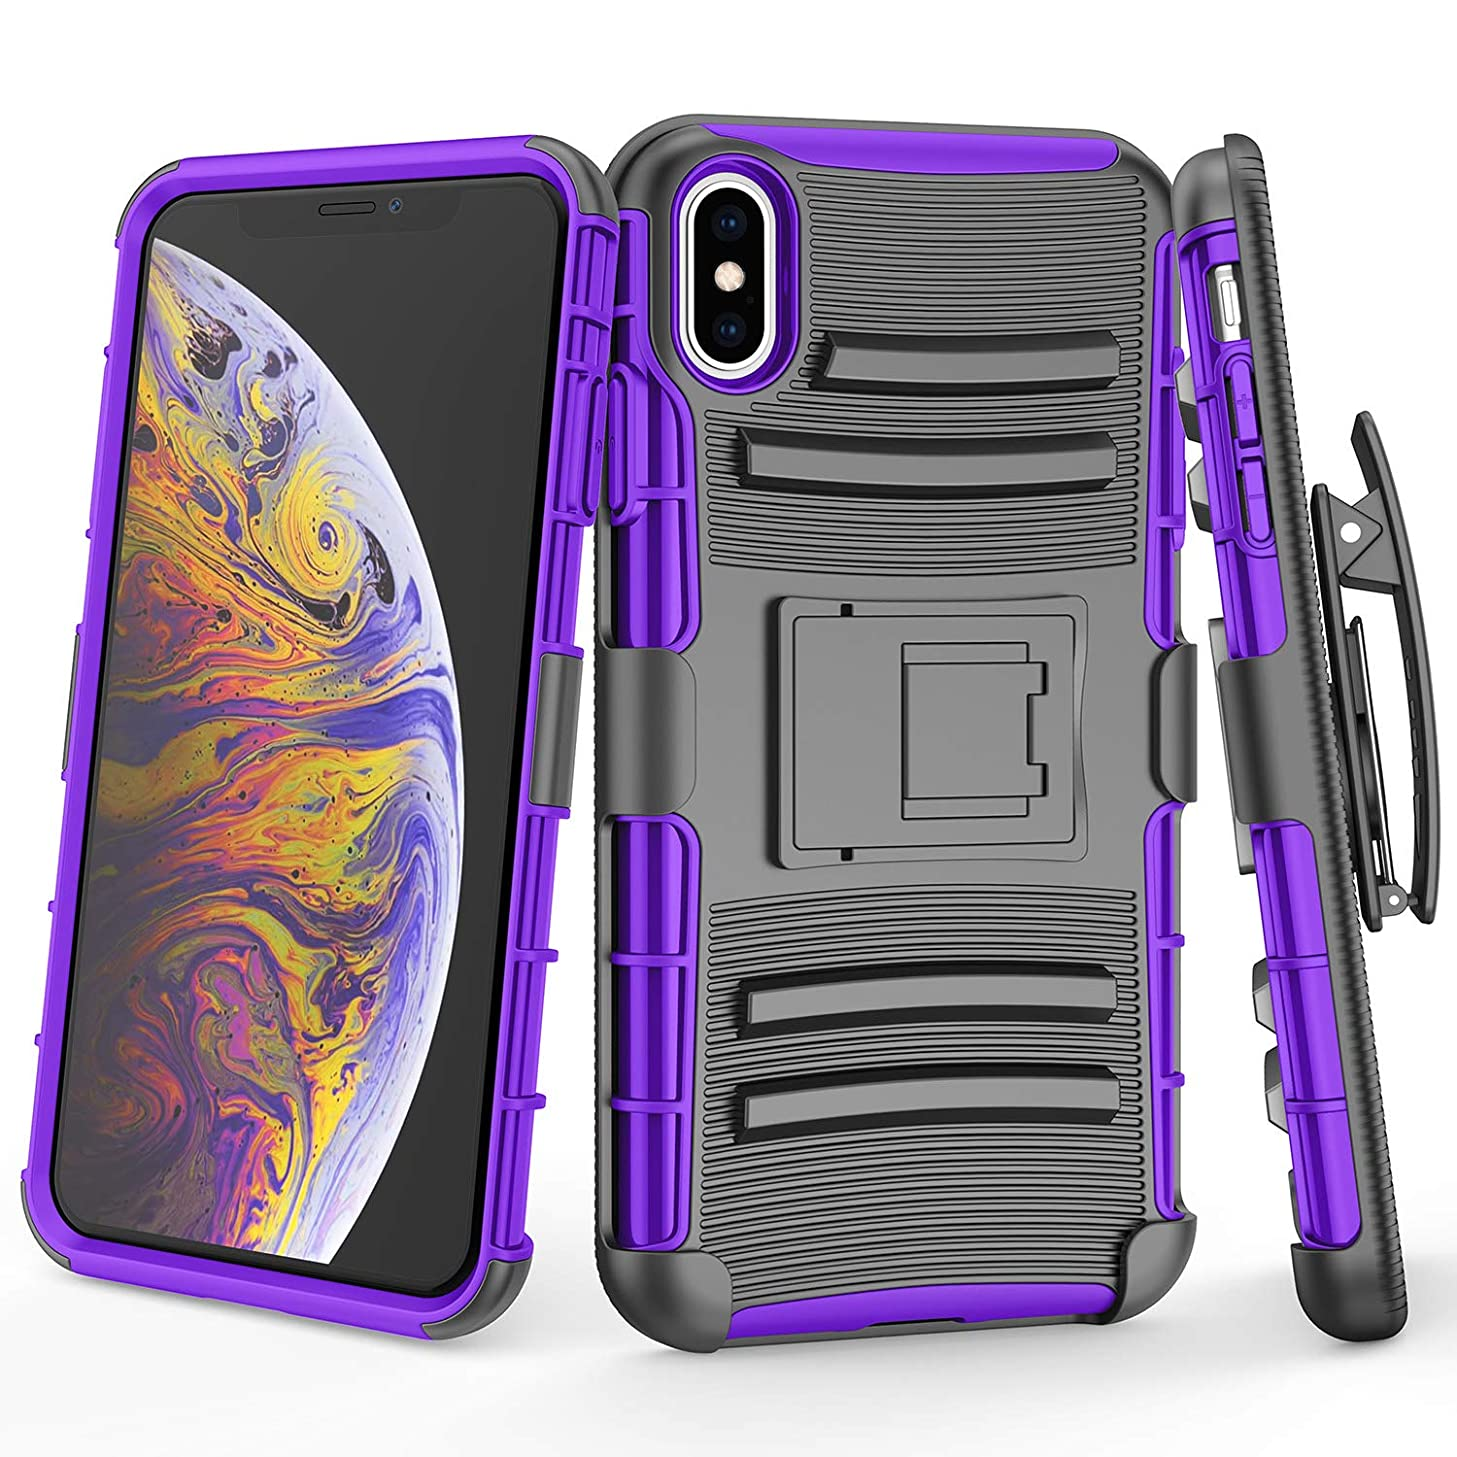 TILL for iPhone Xs Max Case, TILL [Knight Armor] Heavy Duty Full-Body Rugged Holster Resilient Shell [Belt Swivel Clip][Kickstand] Defender Combo Case Cover for Apple iPhone Xs Max 6.5 INCH [Purple]